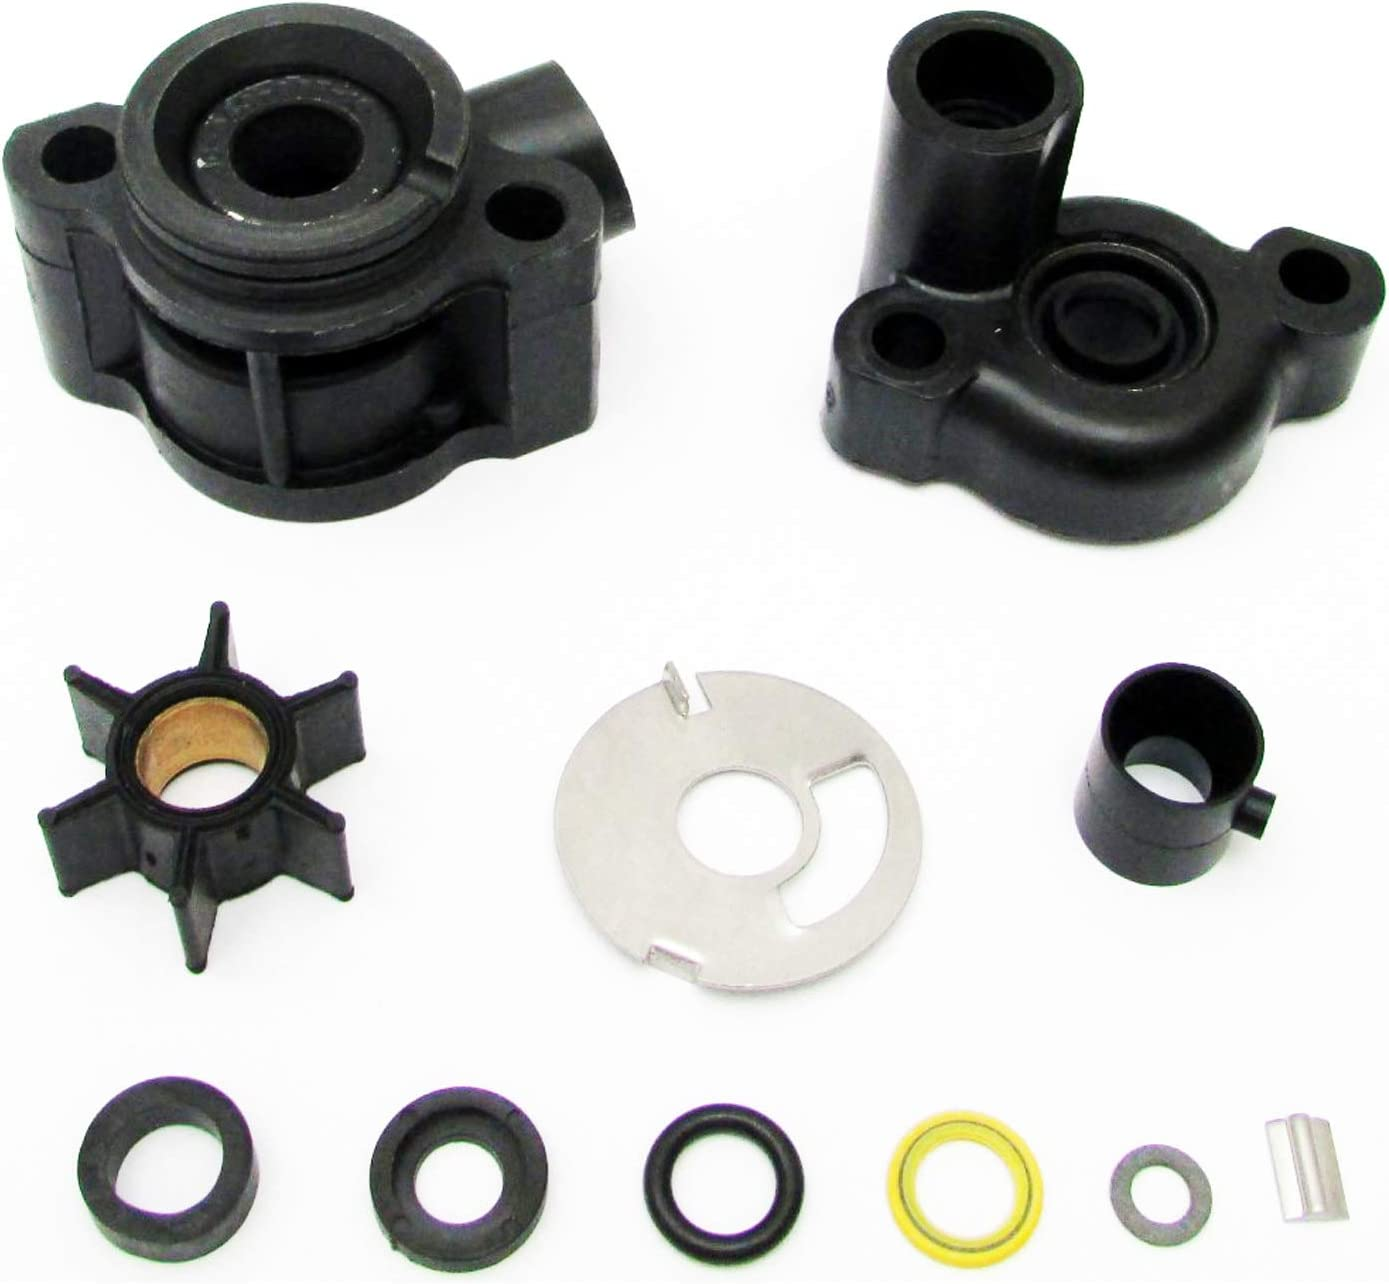 Uanofcn Mercury Mariner Force Water Pump Kit Replacement 46-70941A3